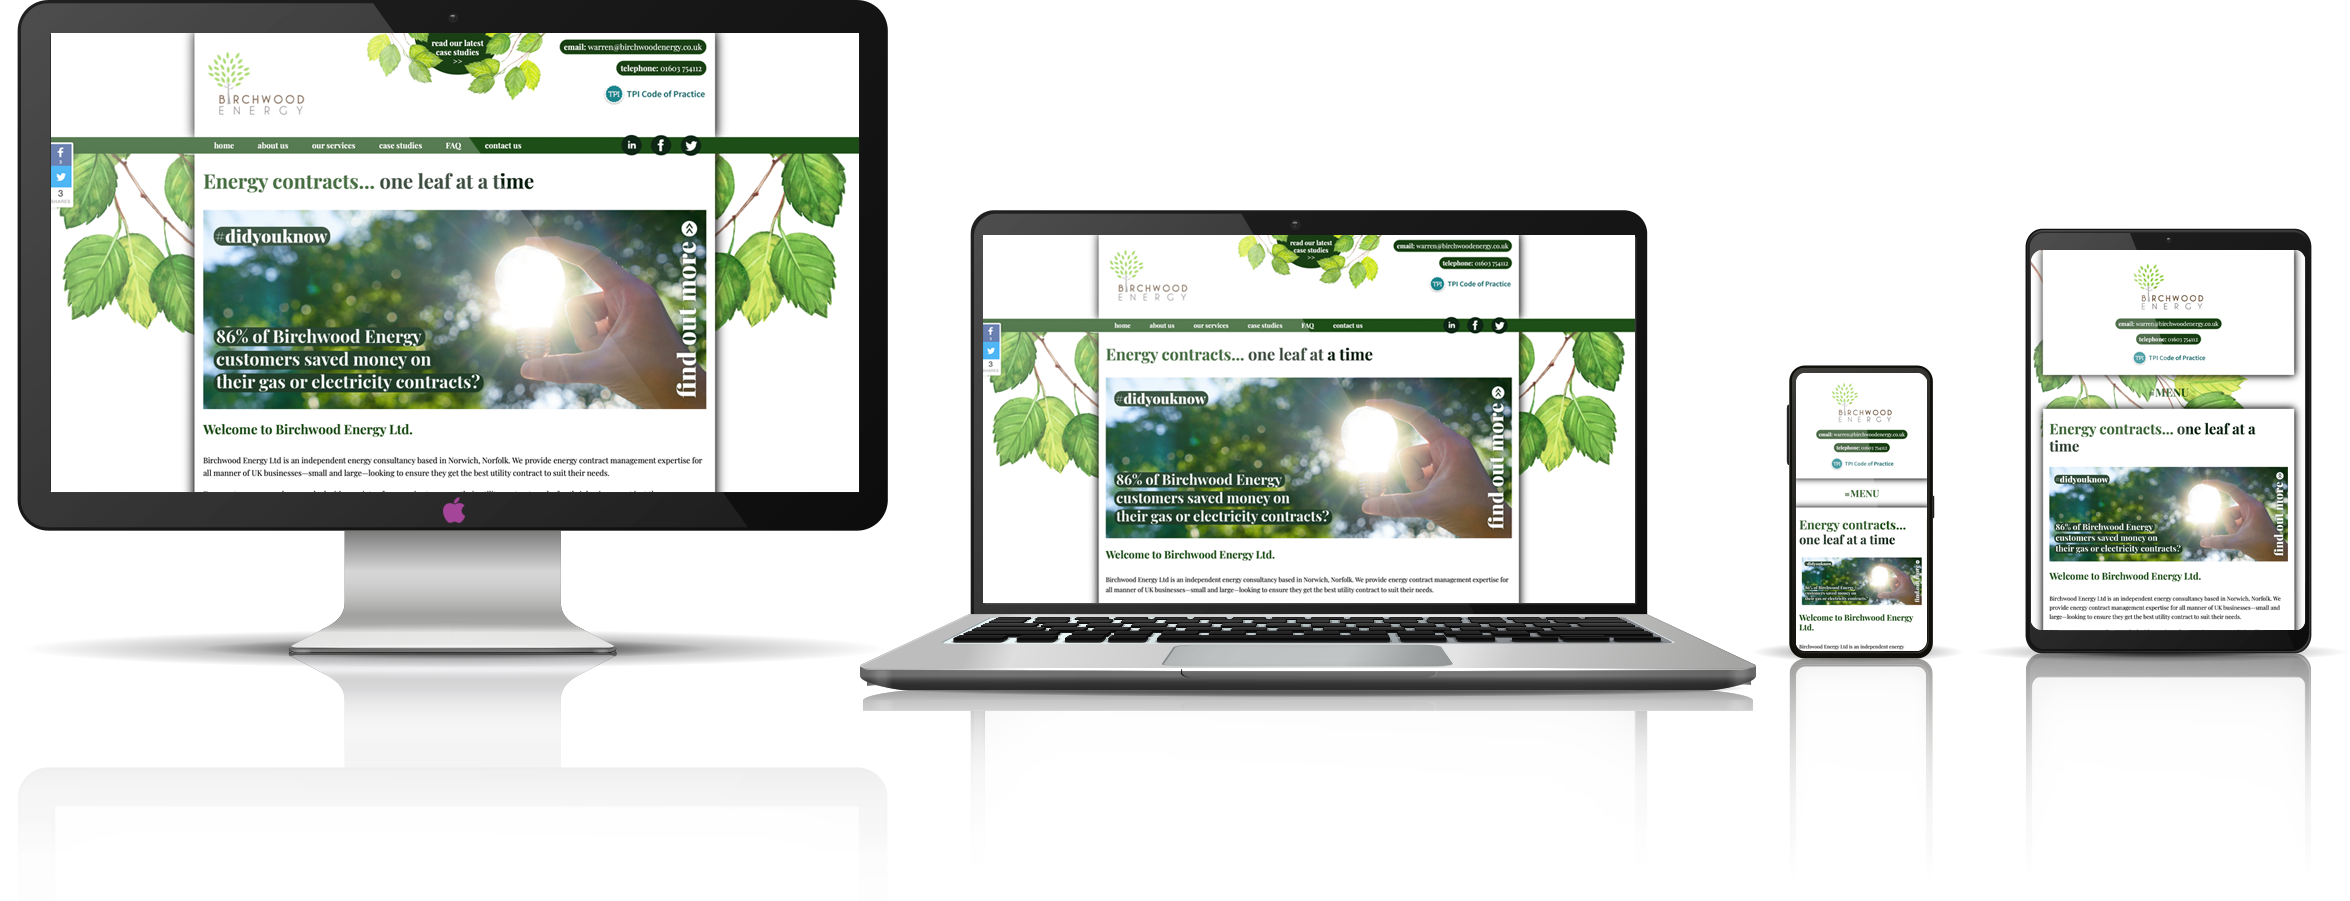 The Birchwood Energy fully responsive mock-up images showing desktop, laptop, tablet, and mobile phone devices.